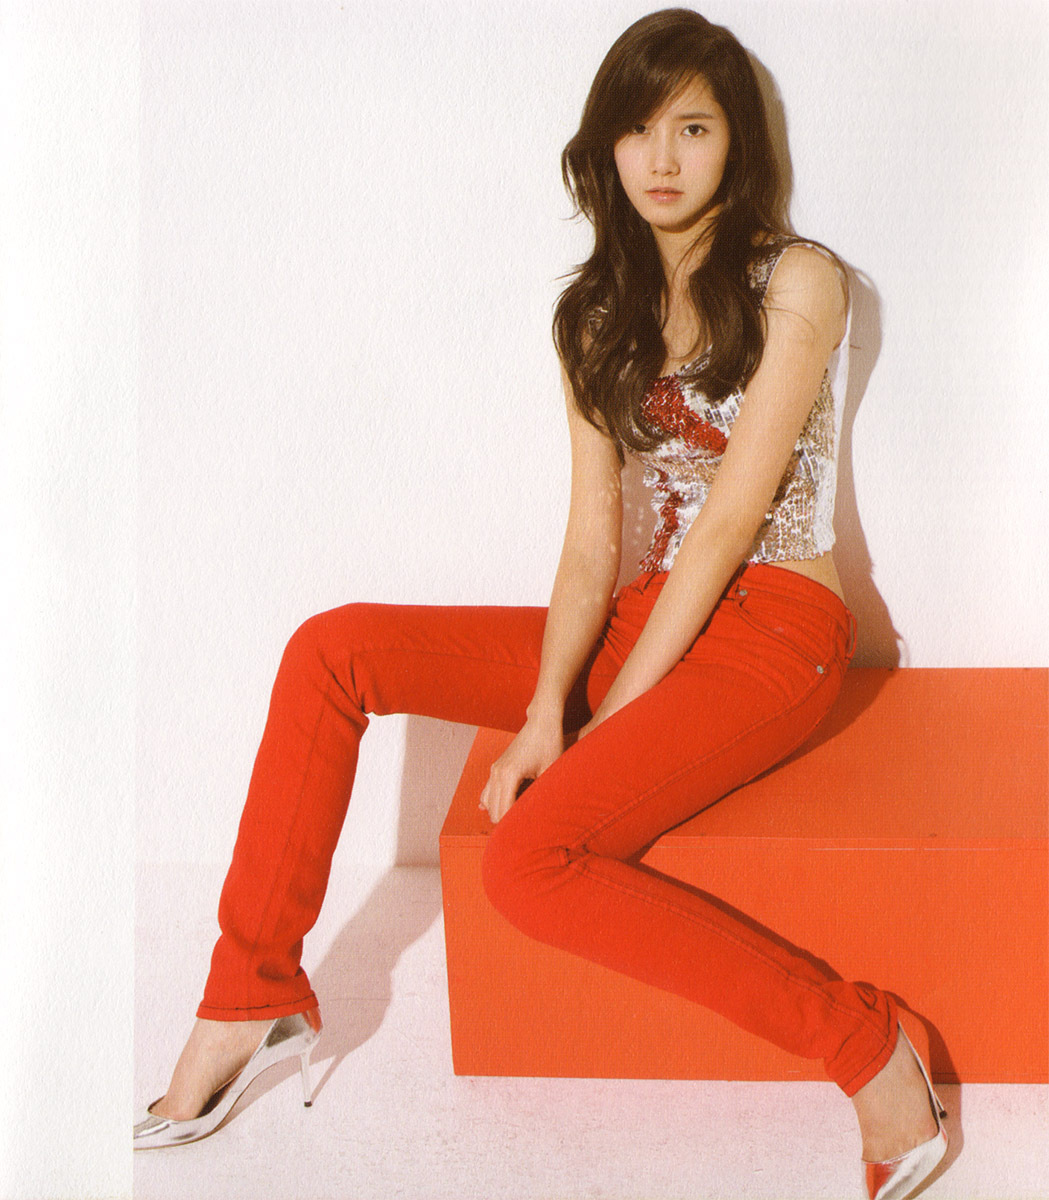 http://images2.fanpop.com/images/photos/7100000/Yoona-girls-generation-snsd-7128980-1049-1200.jpg